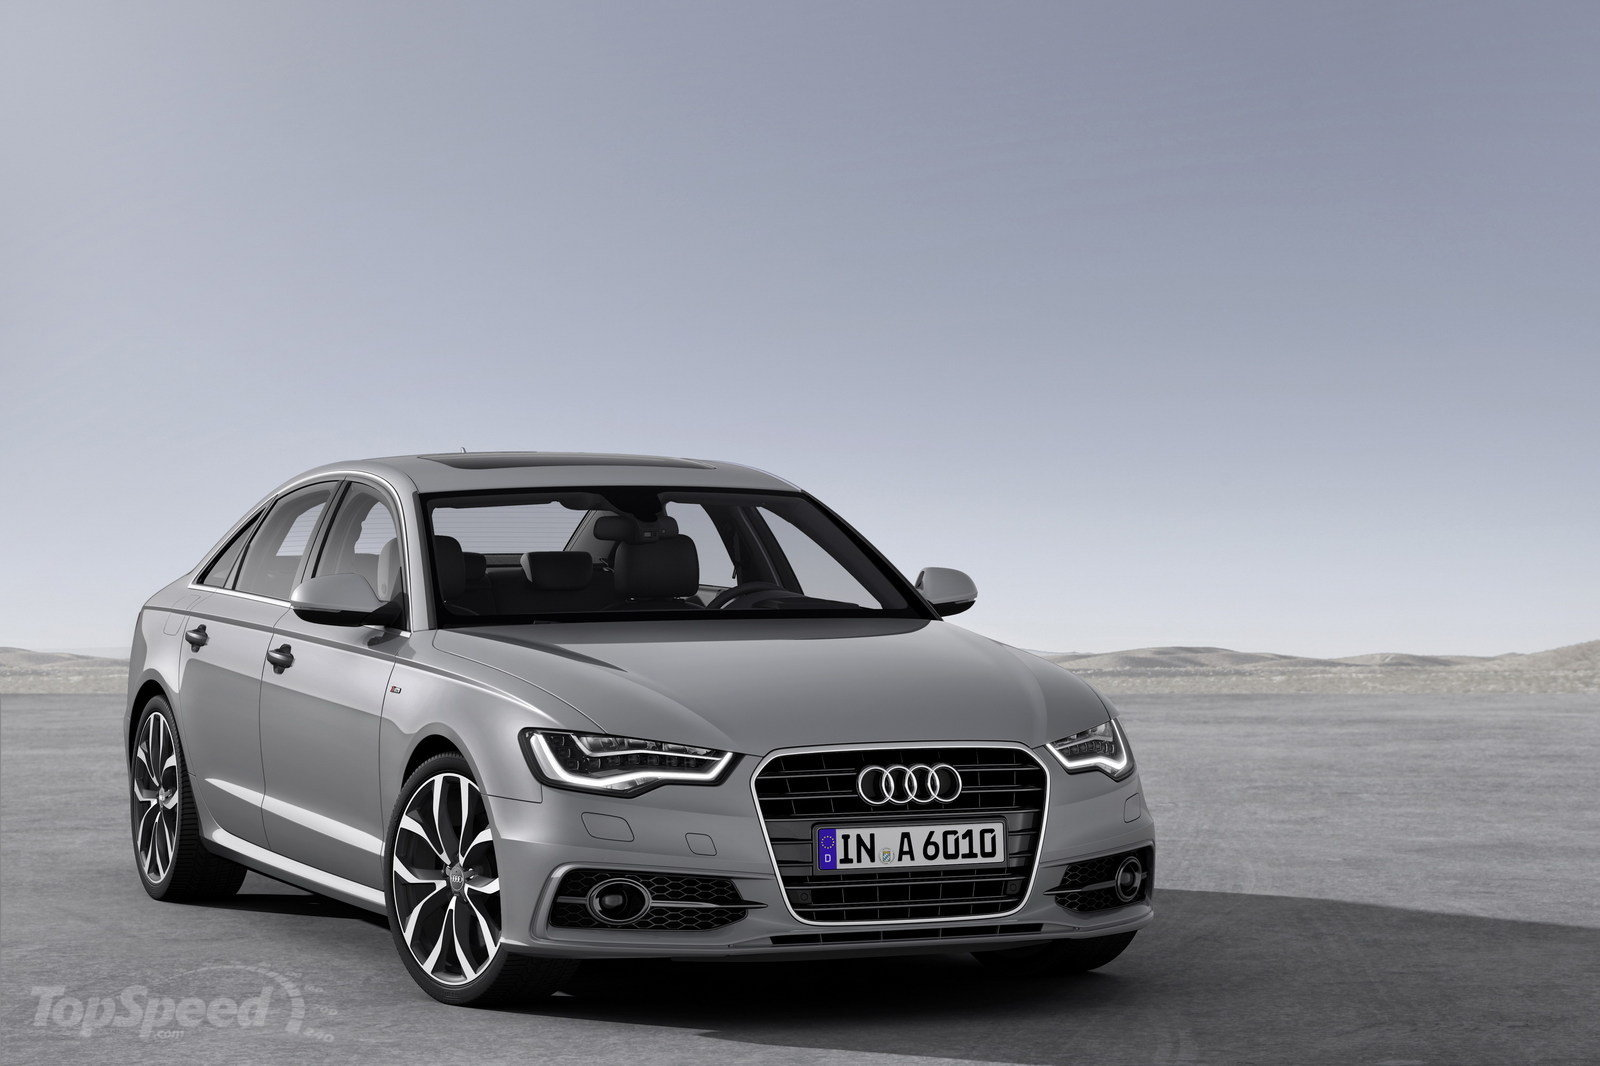 2014 audi a6 tdi ultra review top speed. Black Bedroom Furniture Sets. Home Design Ideas